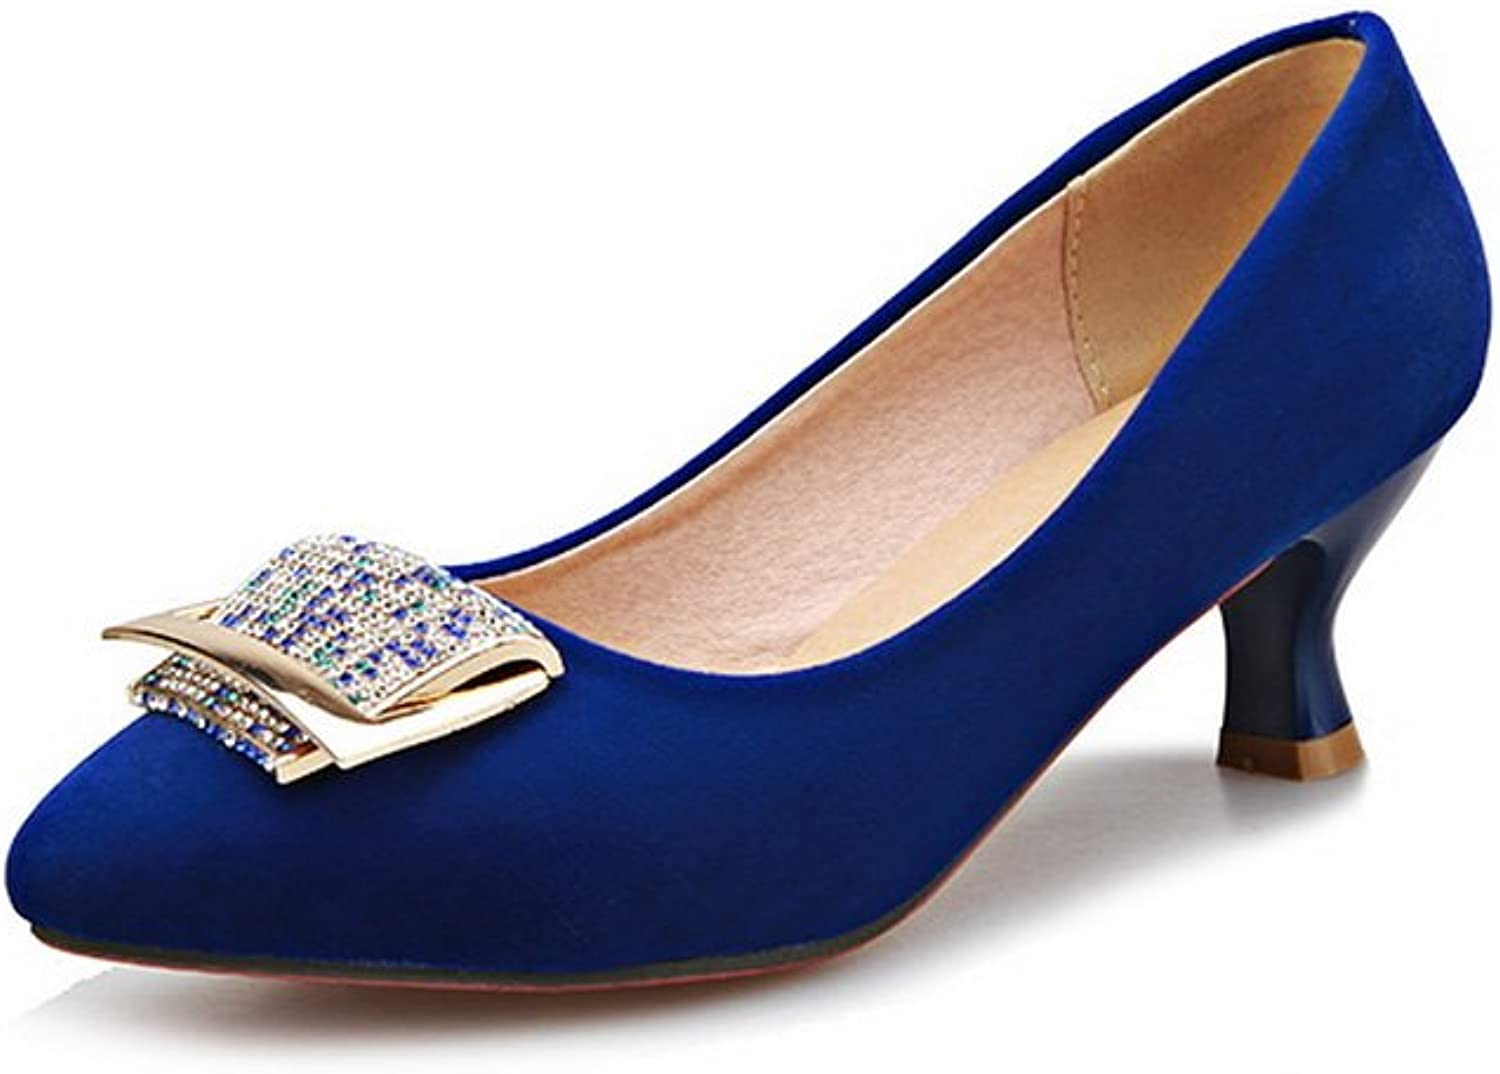 1TO9 Ladies Metal Ornament Pull-On Low-Cut Uppers bluee Imitated Suede Pumps-shoes - 7.5 B(M) US